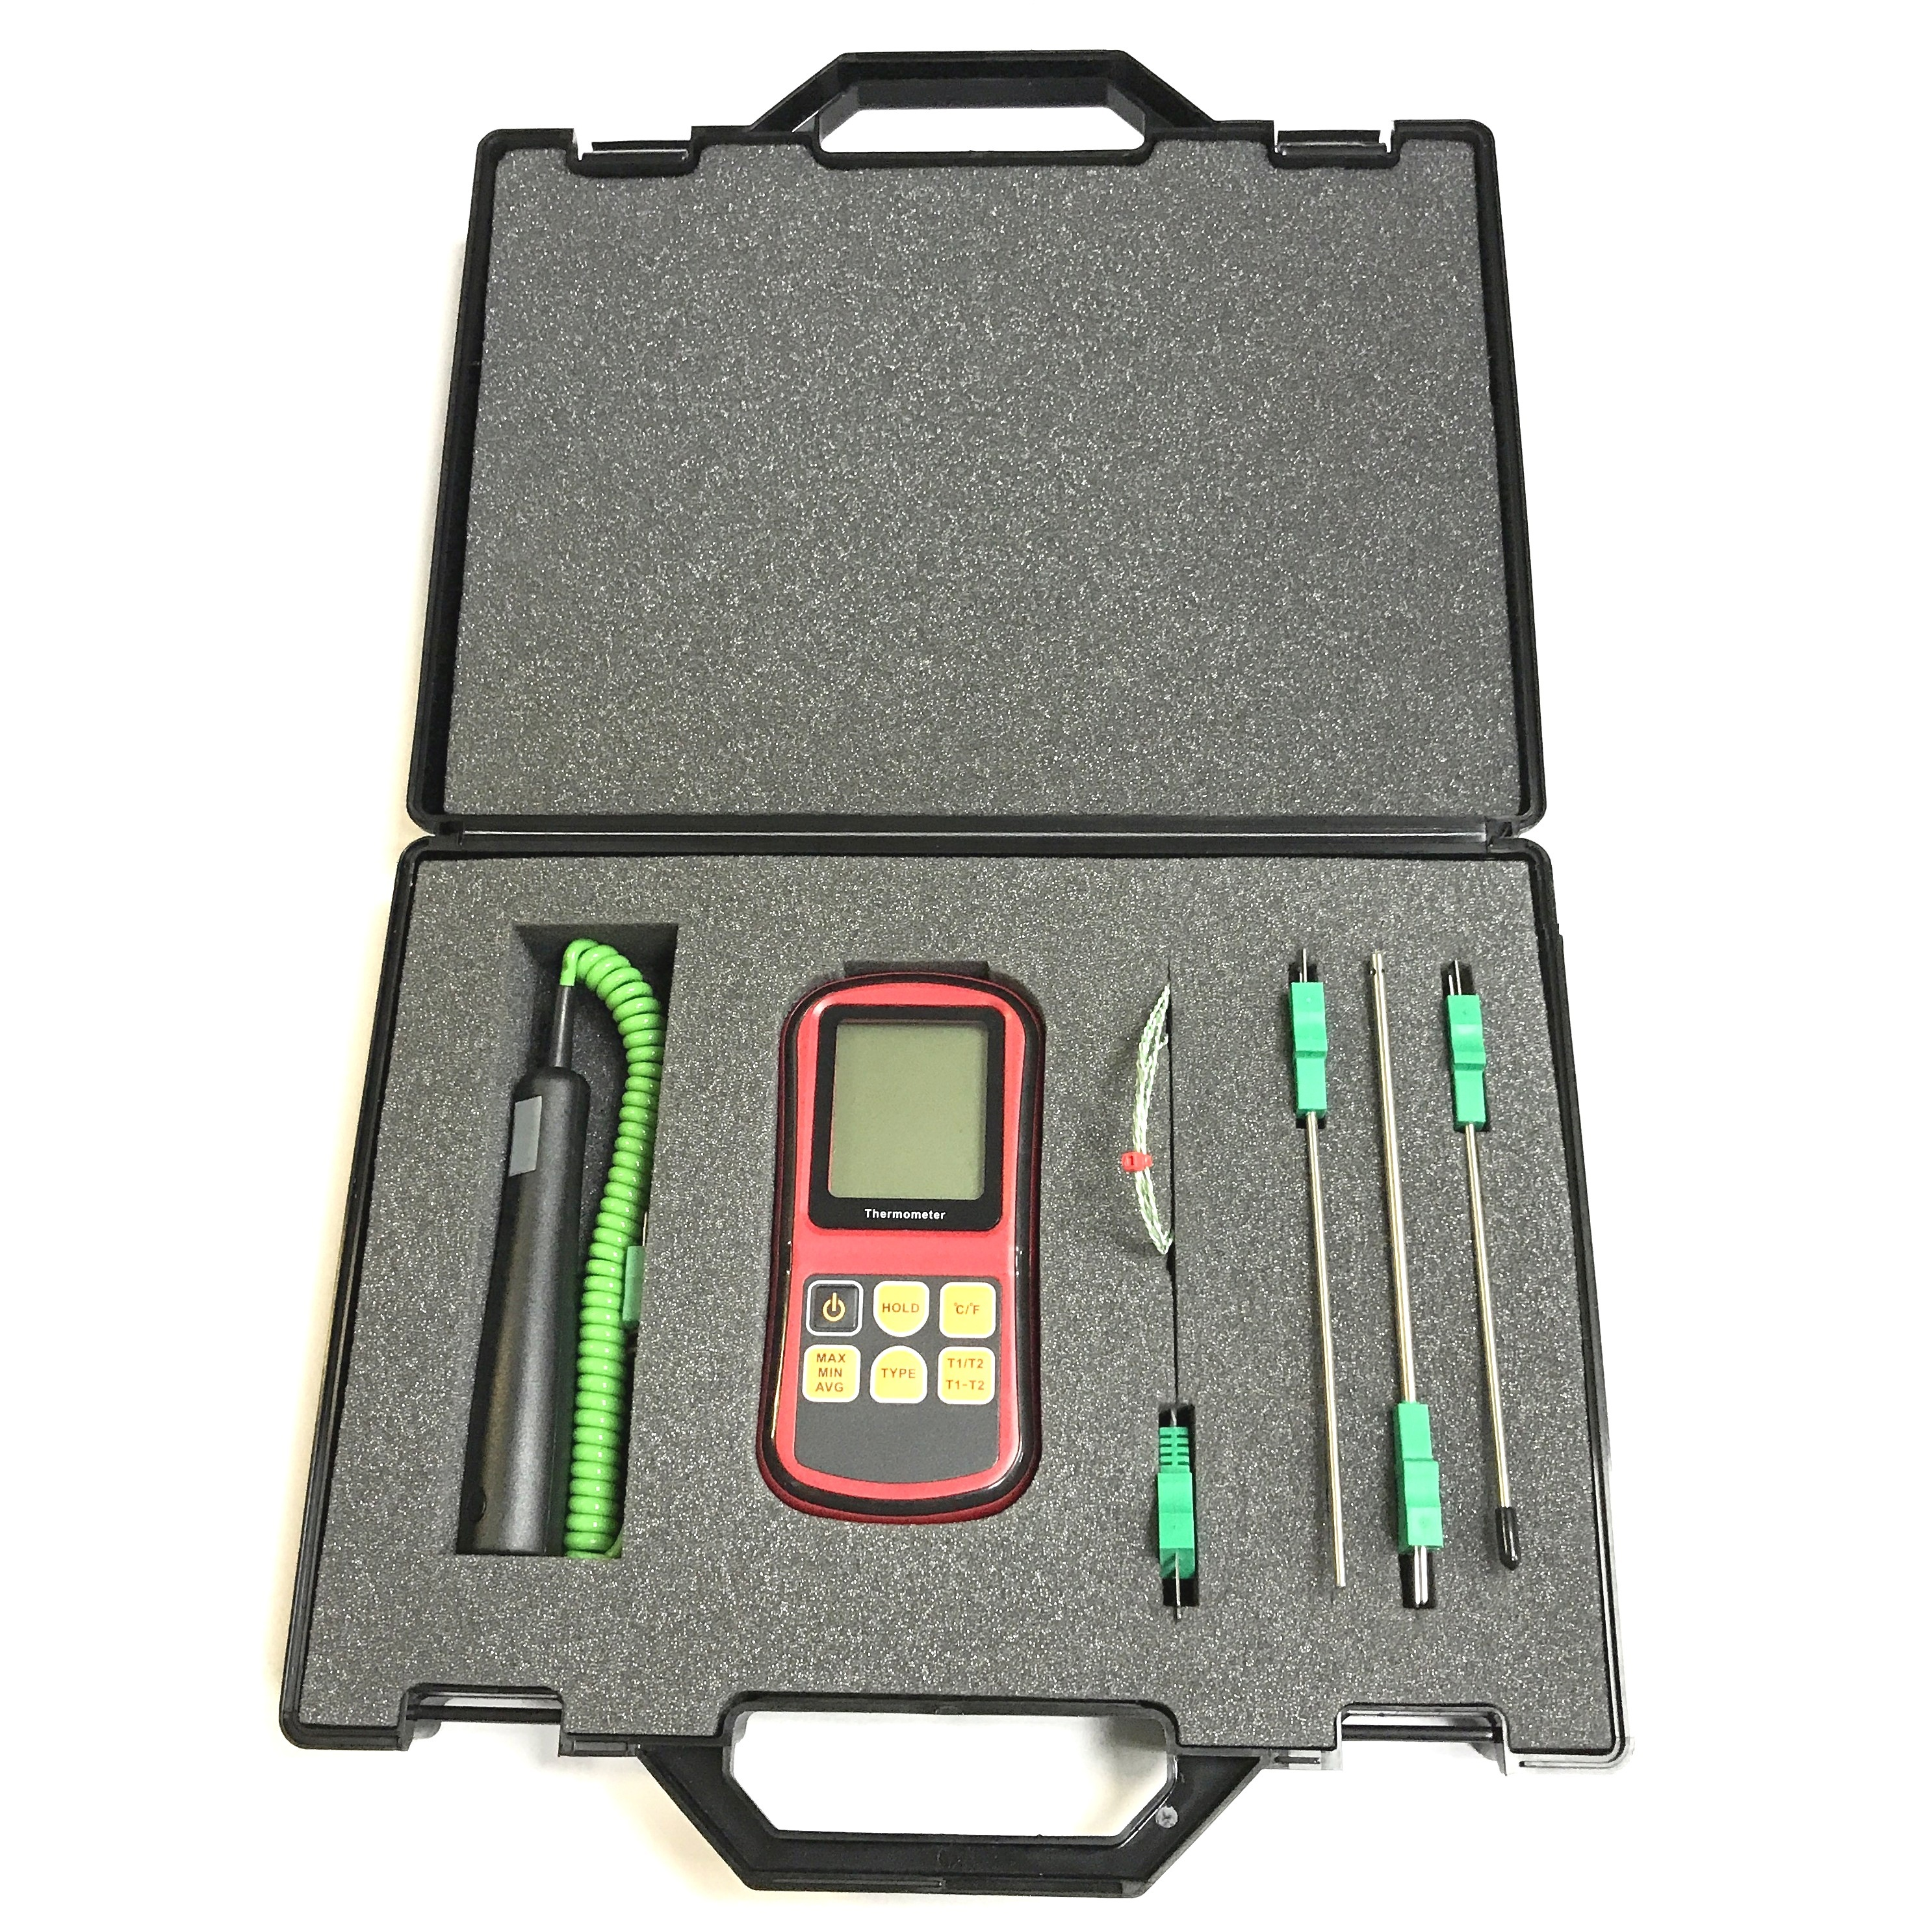 Thermocouple Kits with Meter & Probes Type K IEC